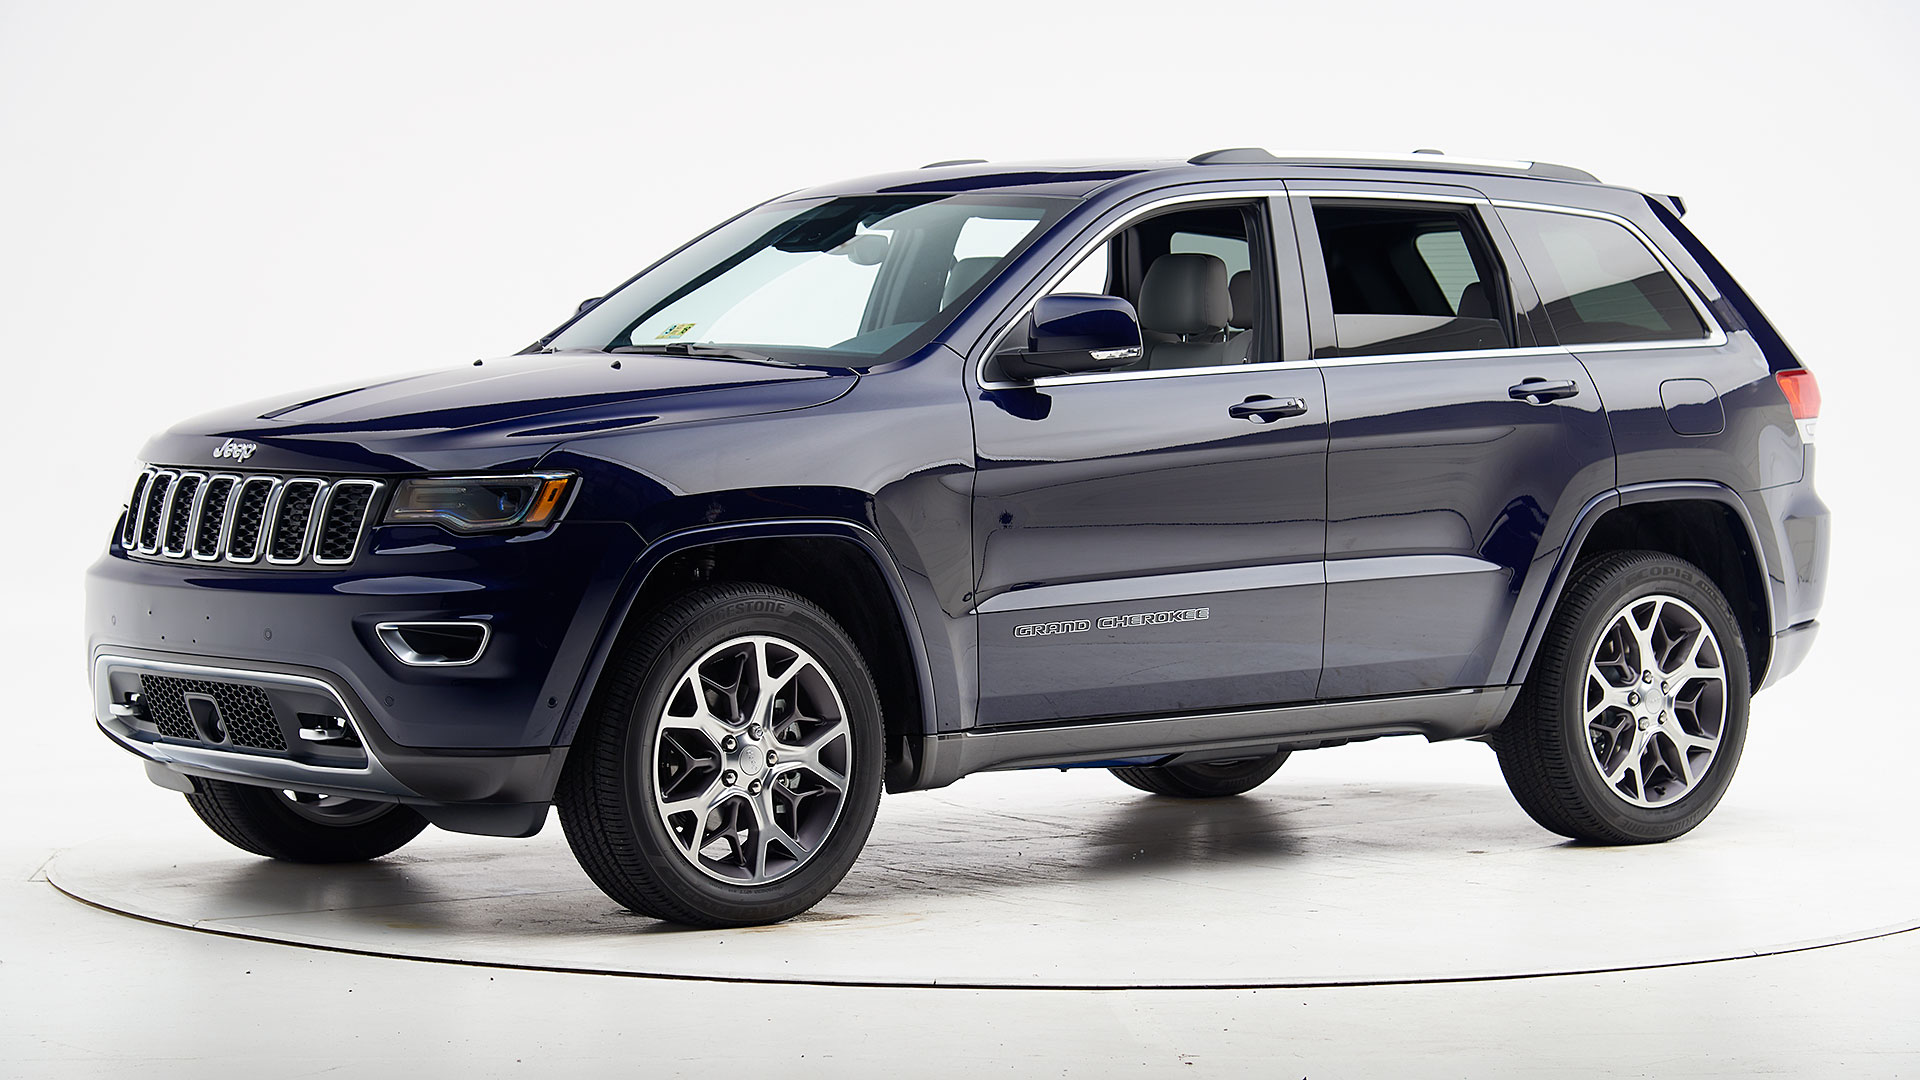 2019 Jeep Grand Cherokee 4-door SUV